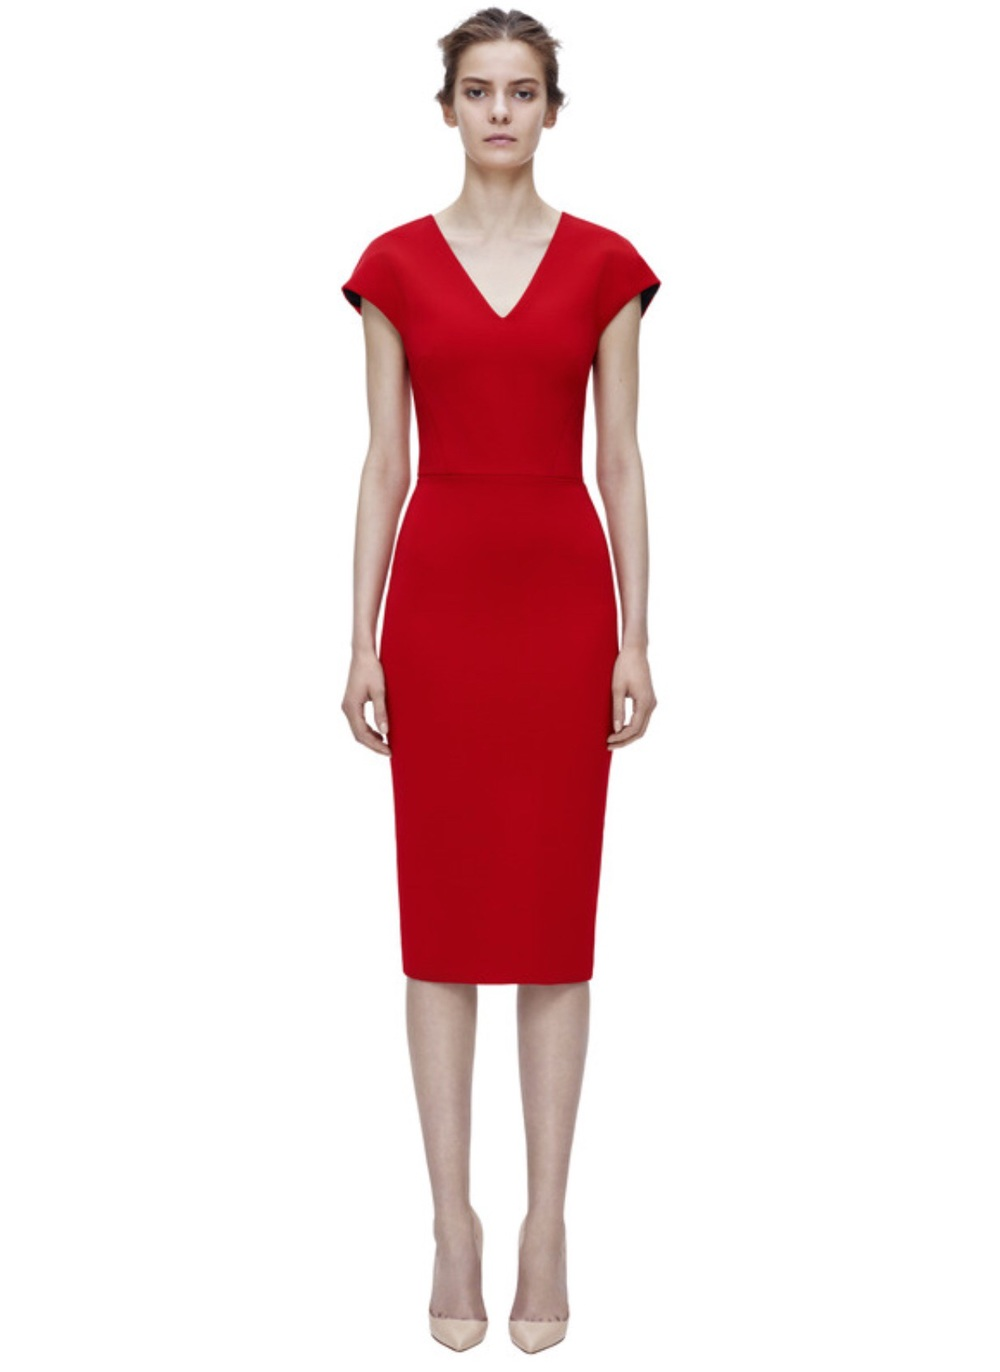 The perfect little red dress available at victoriabeckham.com